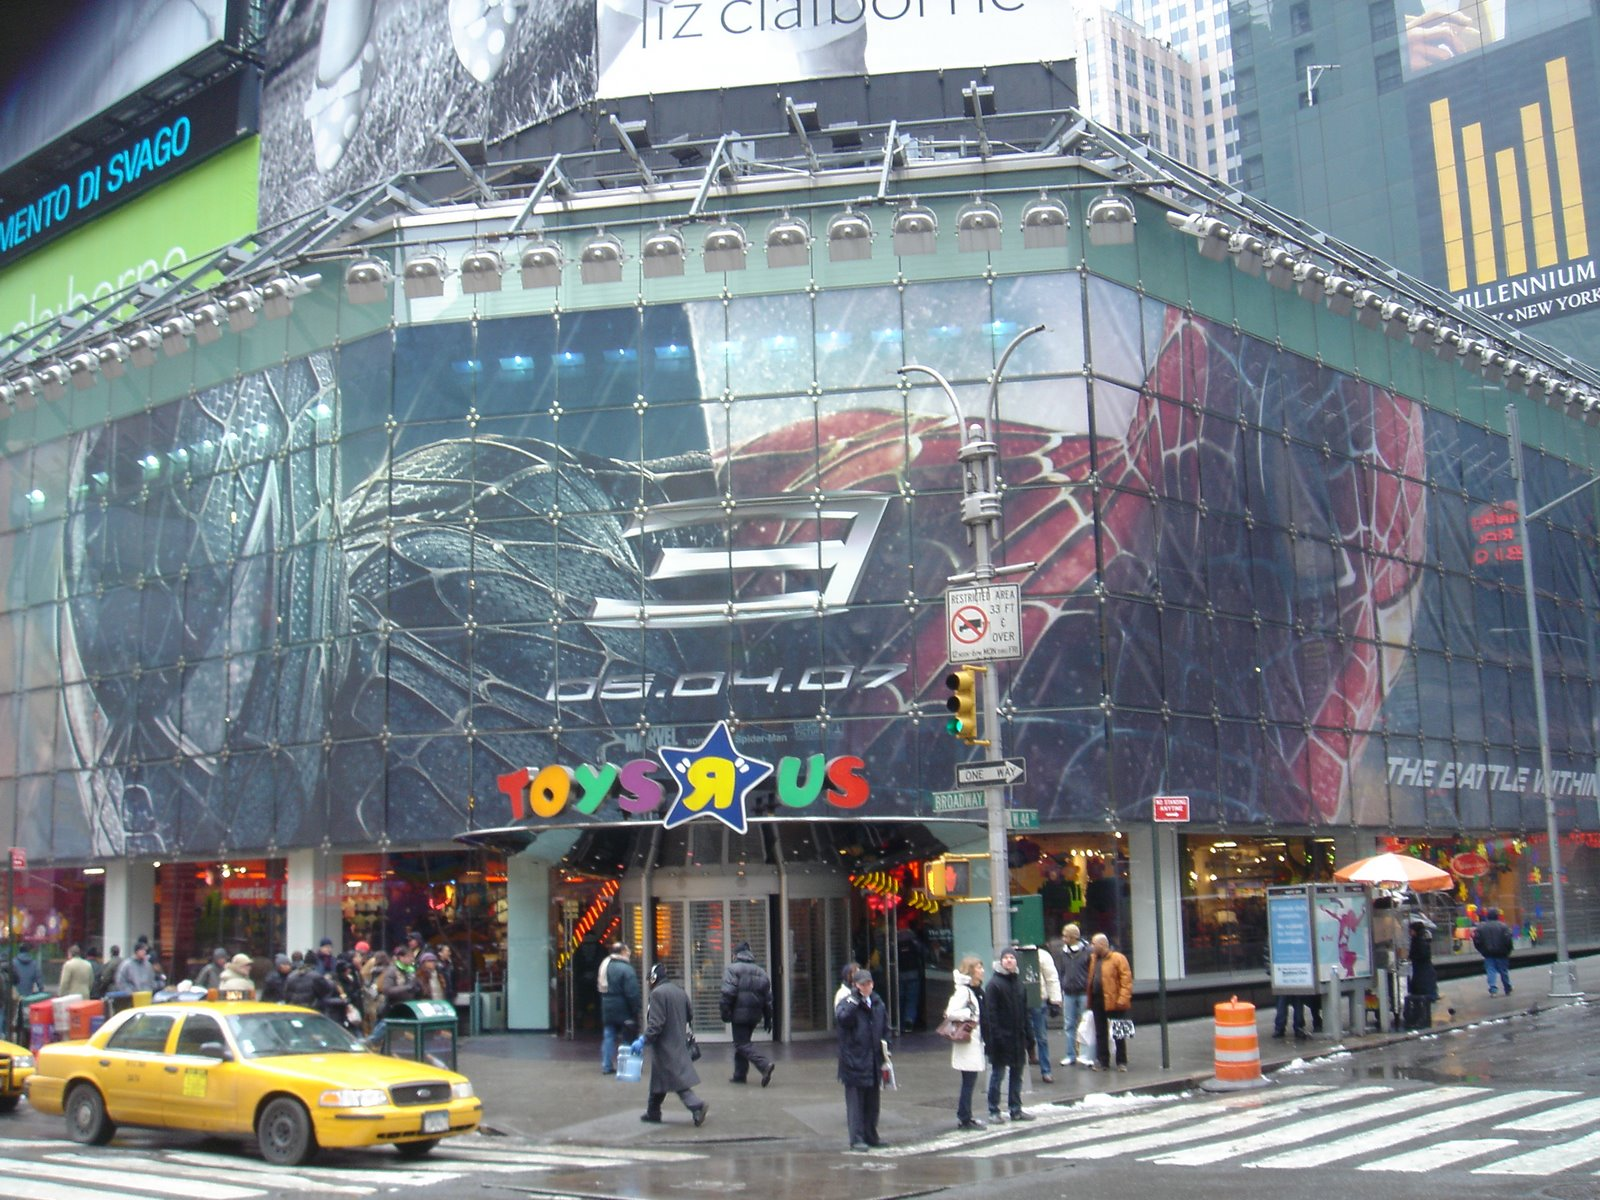 Toys r us nyc pictures Toys R m - Toy Store - Shop Toys, Games More Online